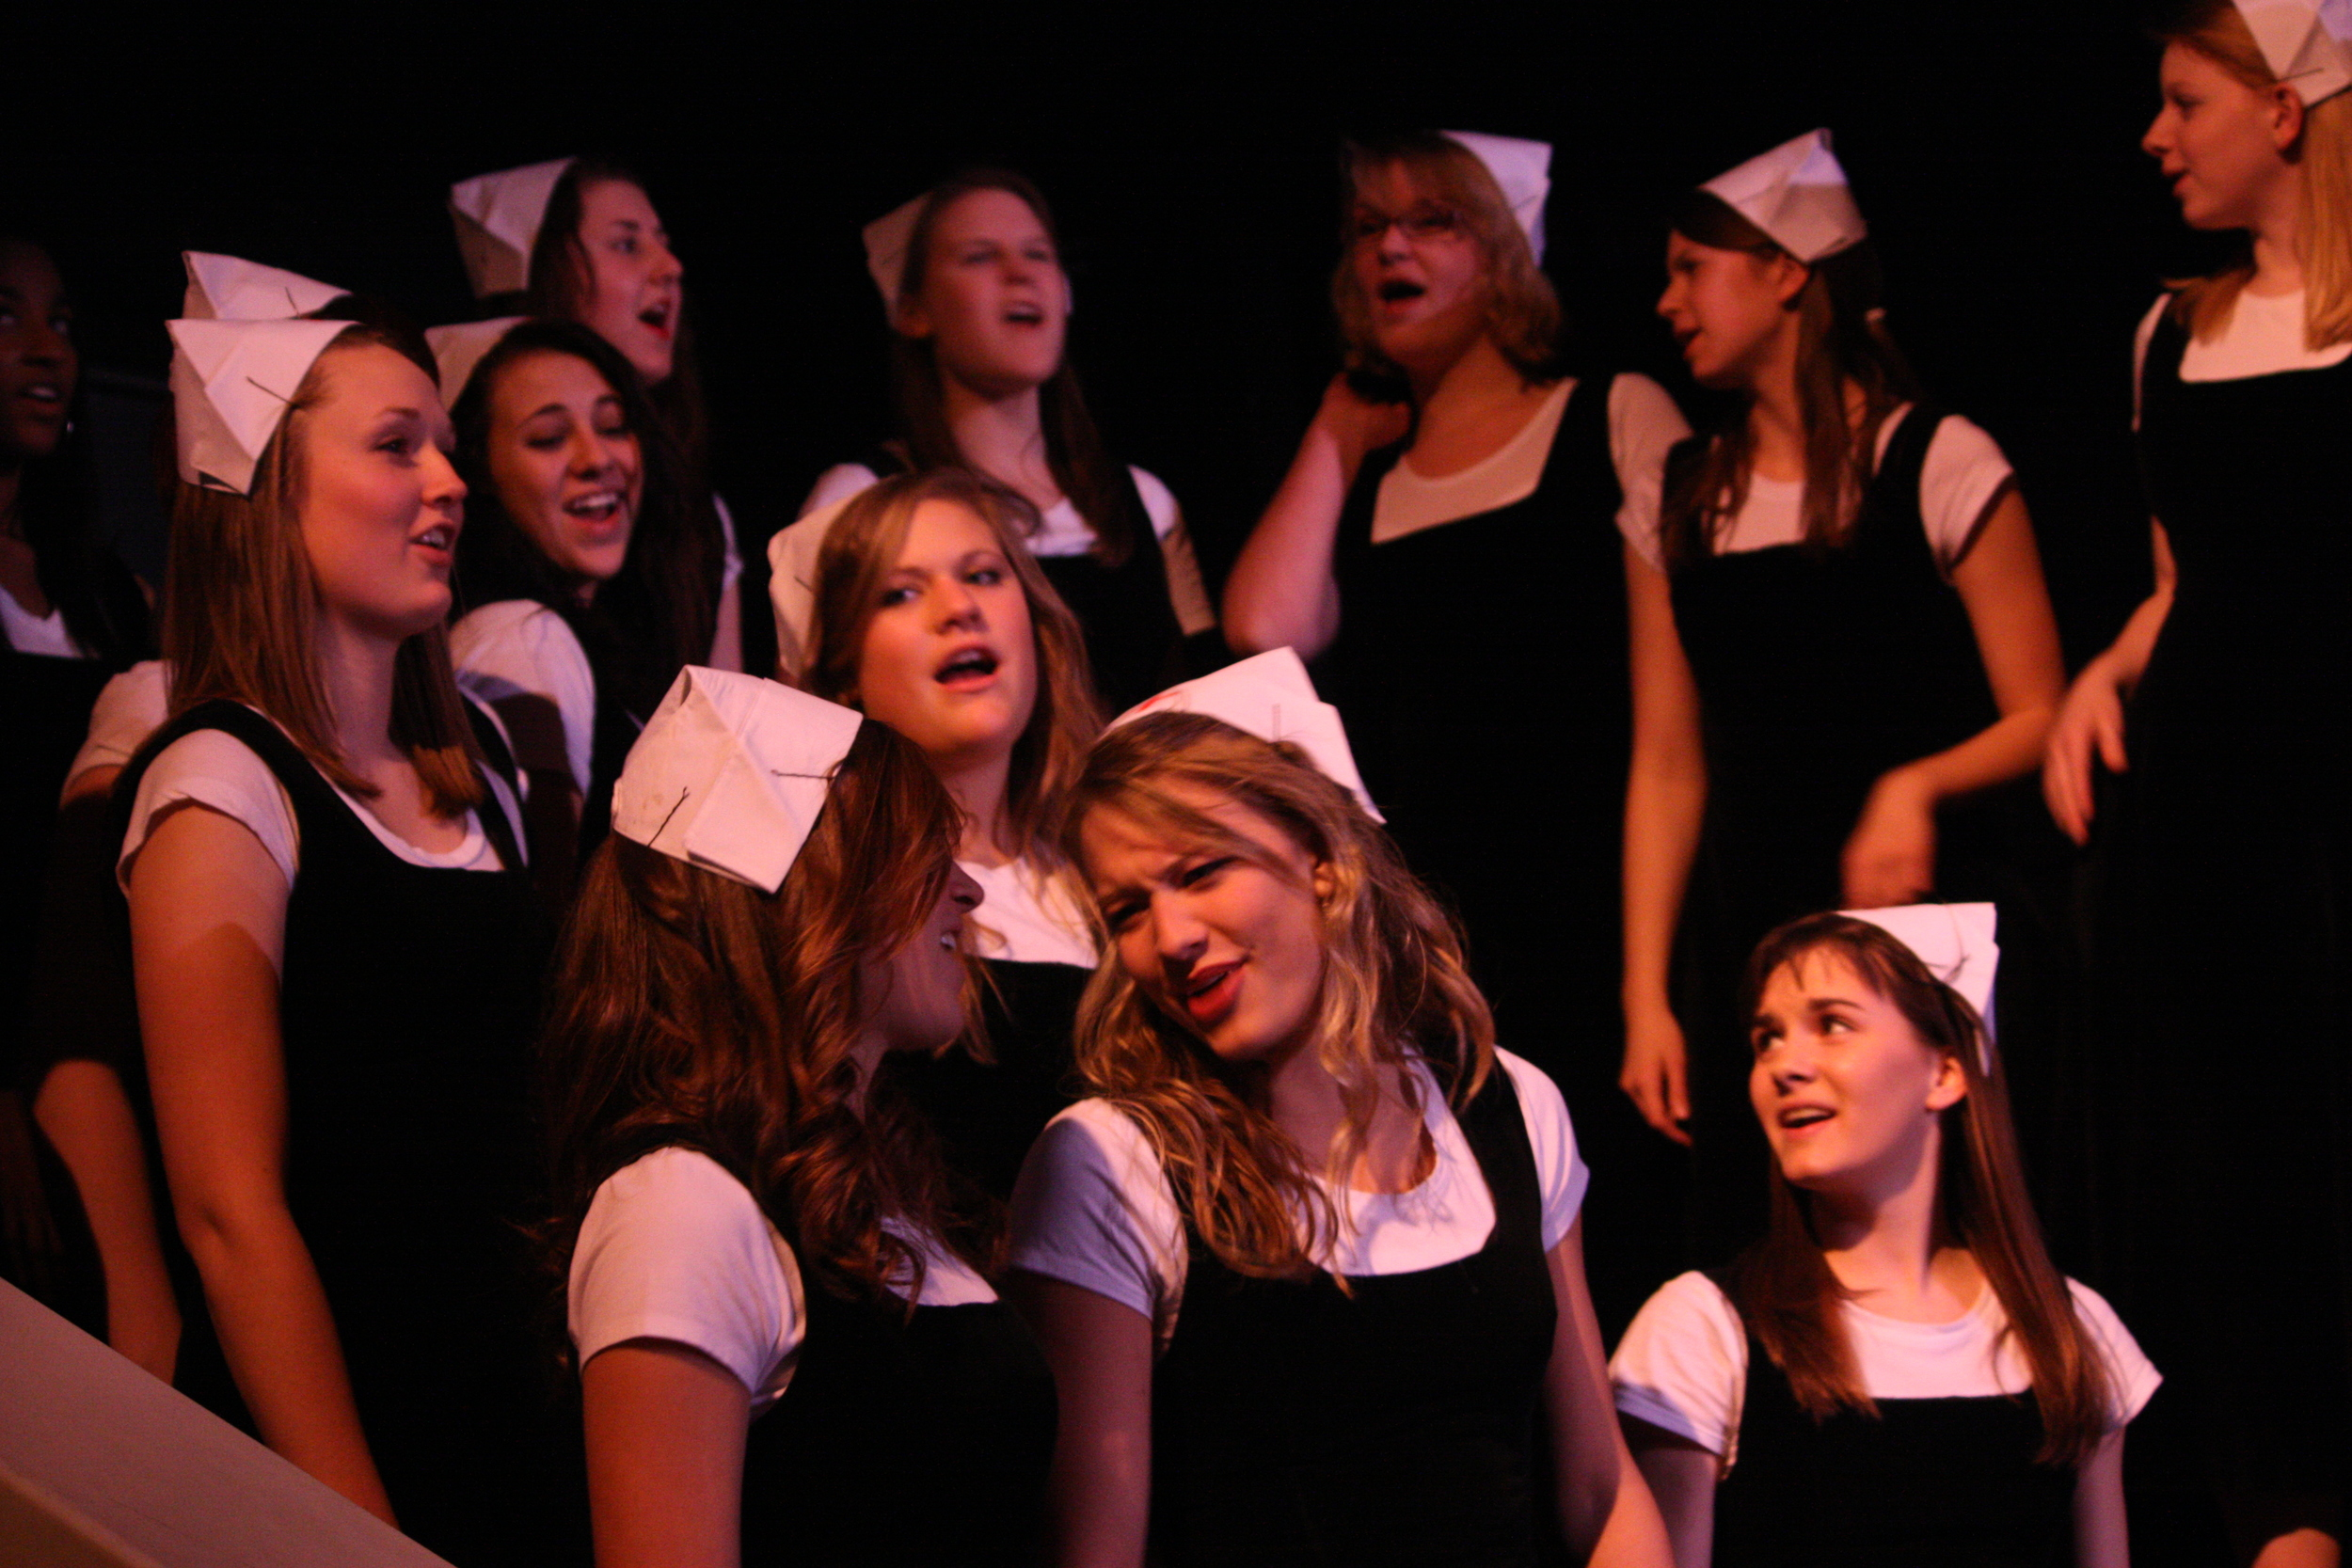 2010 South Pacific in concert 216.jpg